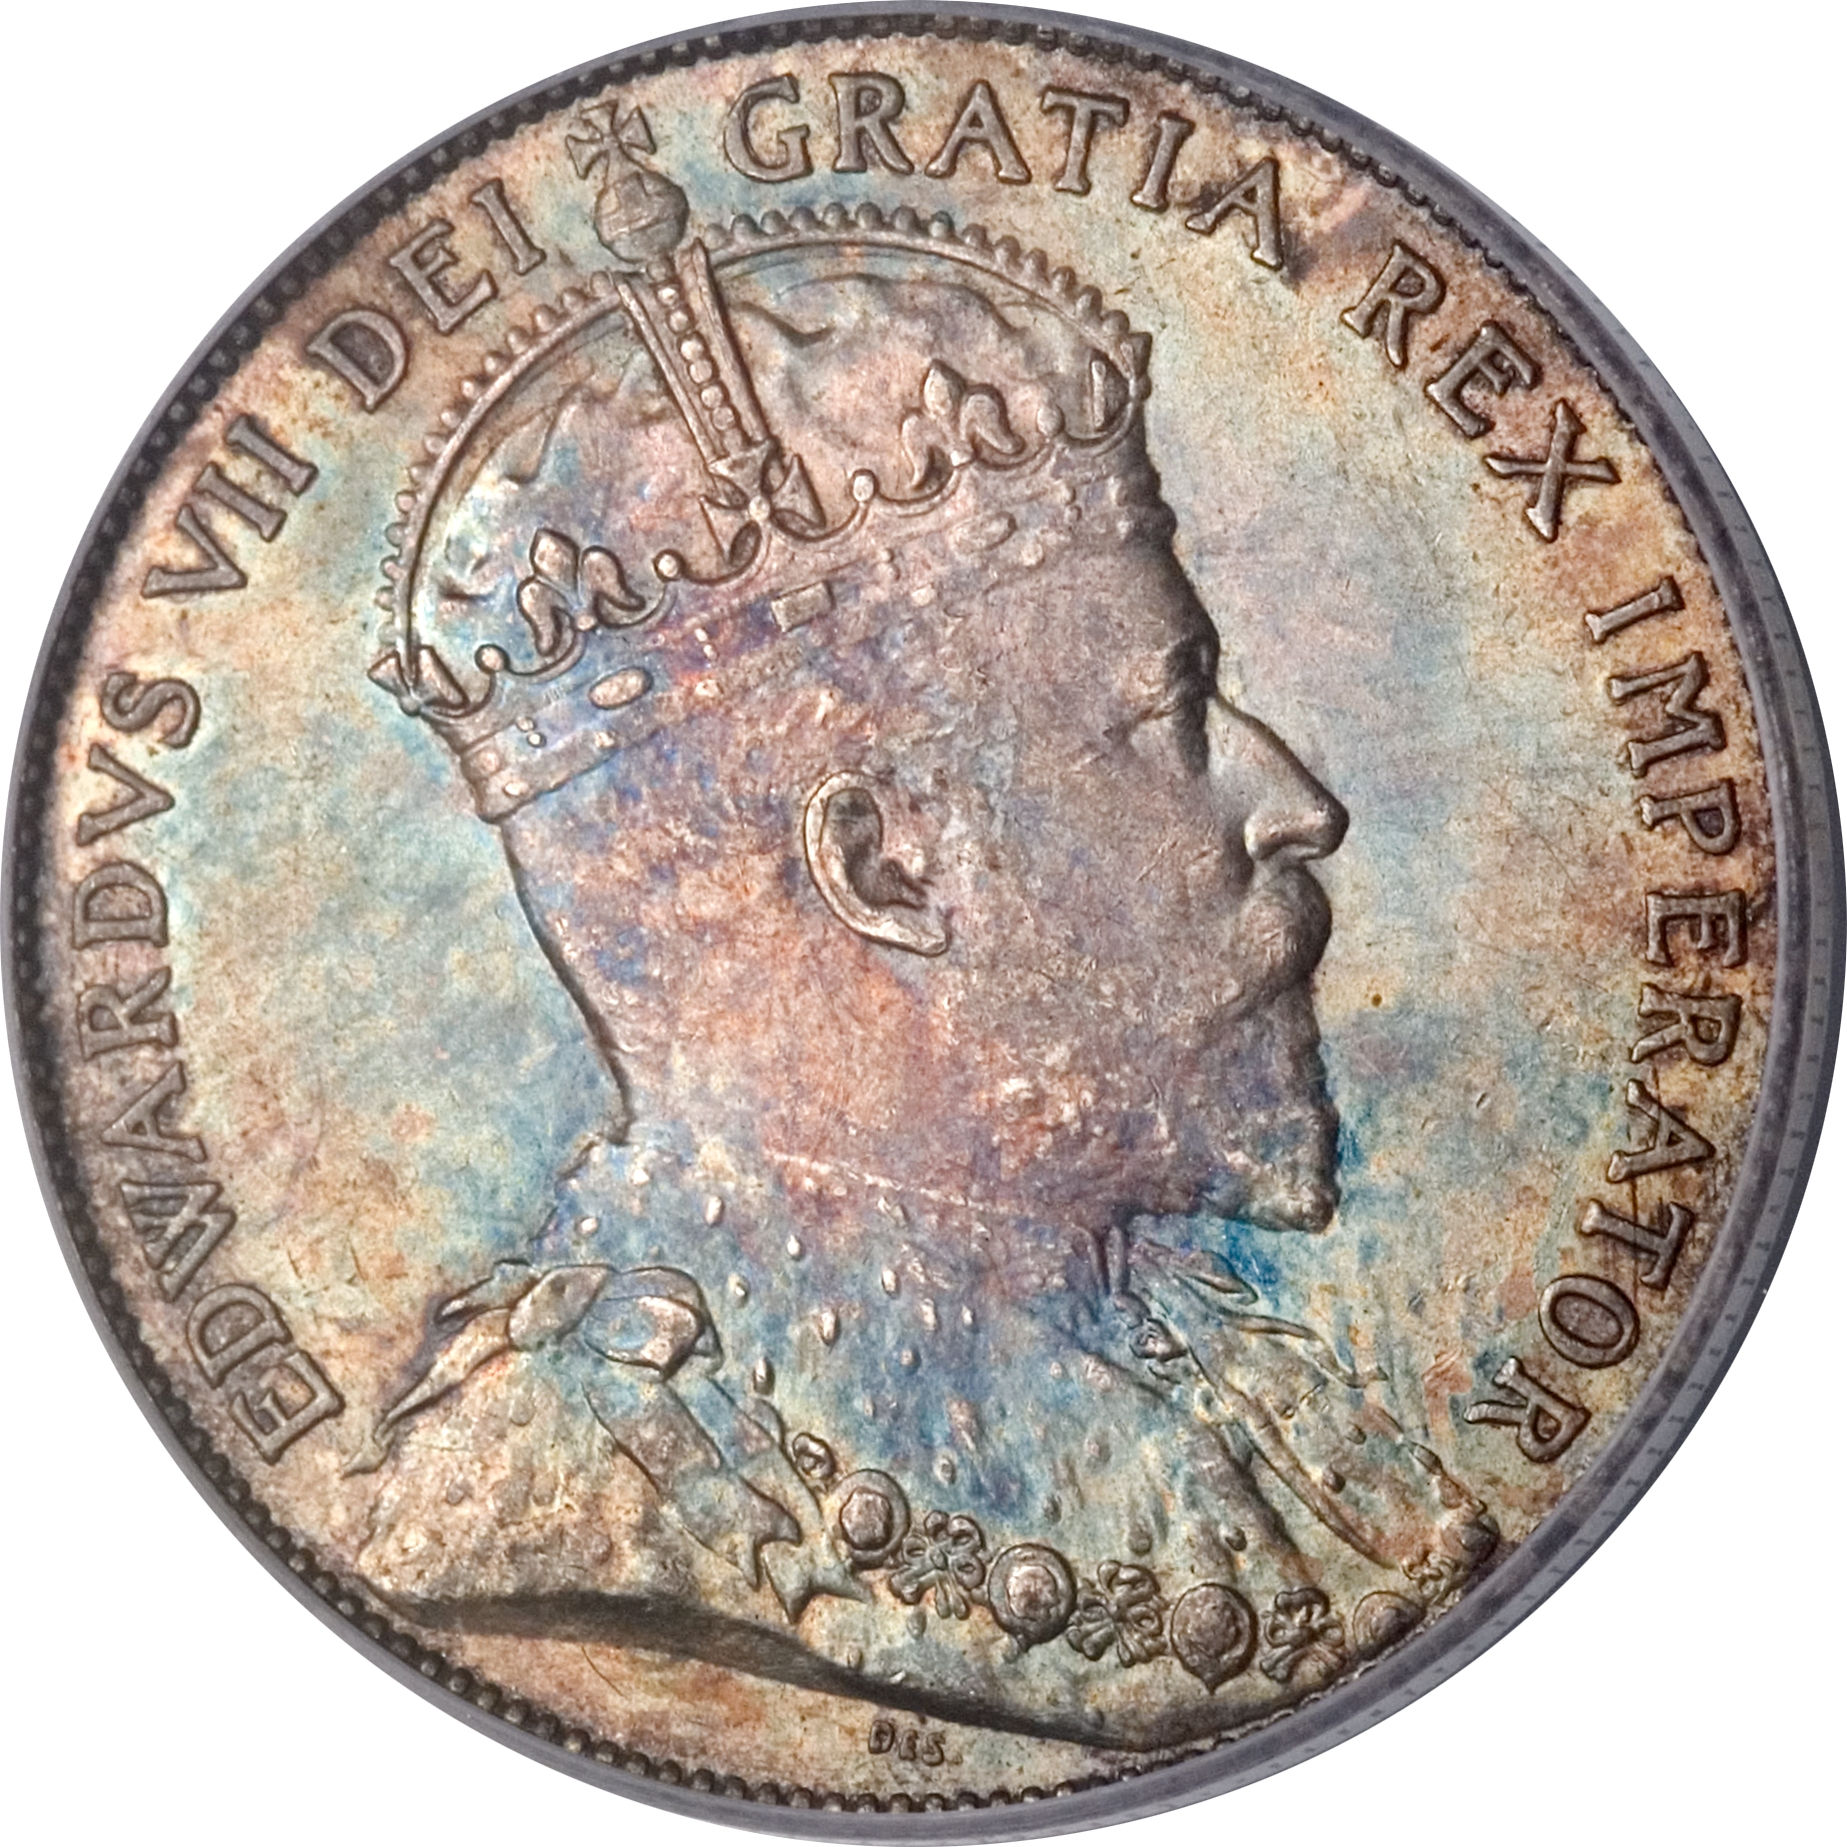 1906 Canadian Circulated One Large Cent Edward VII Coin!